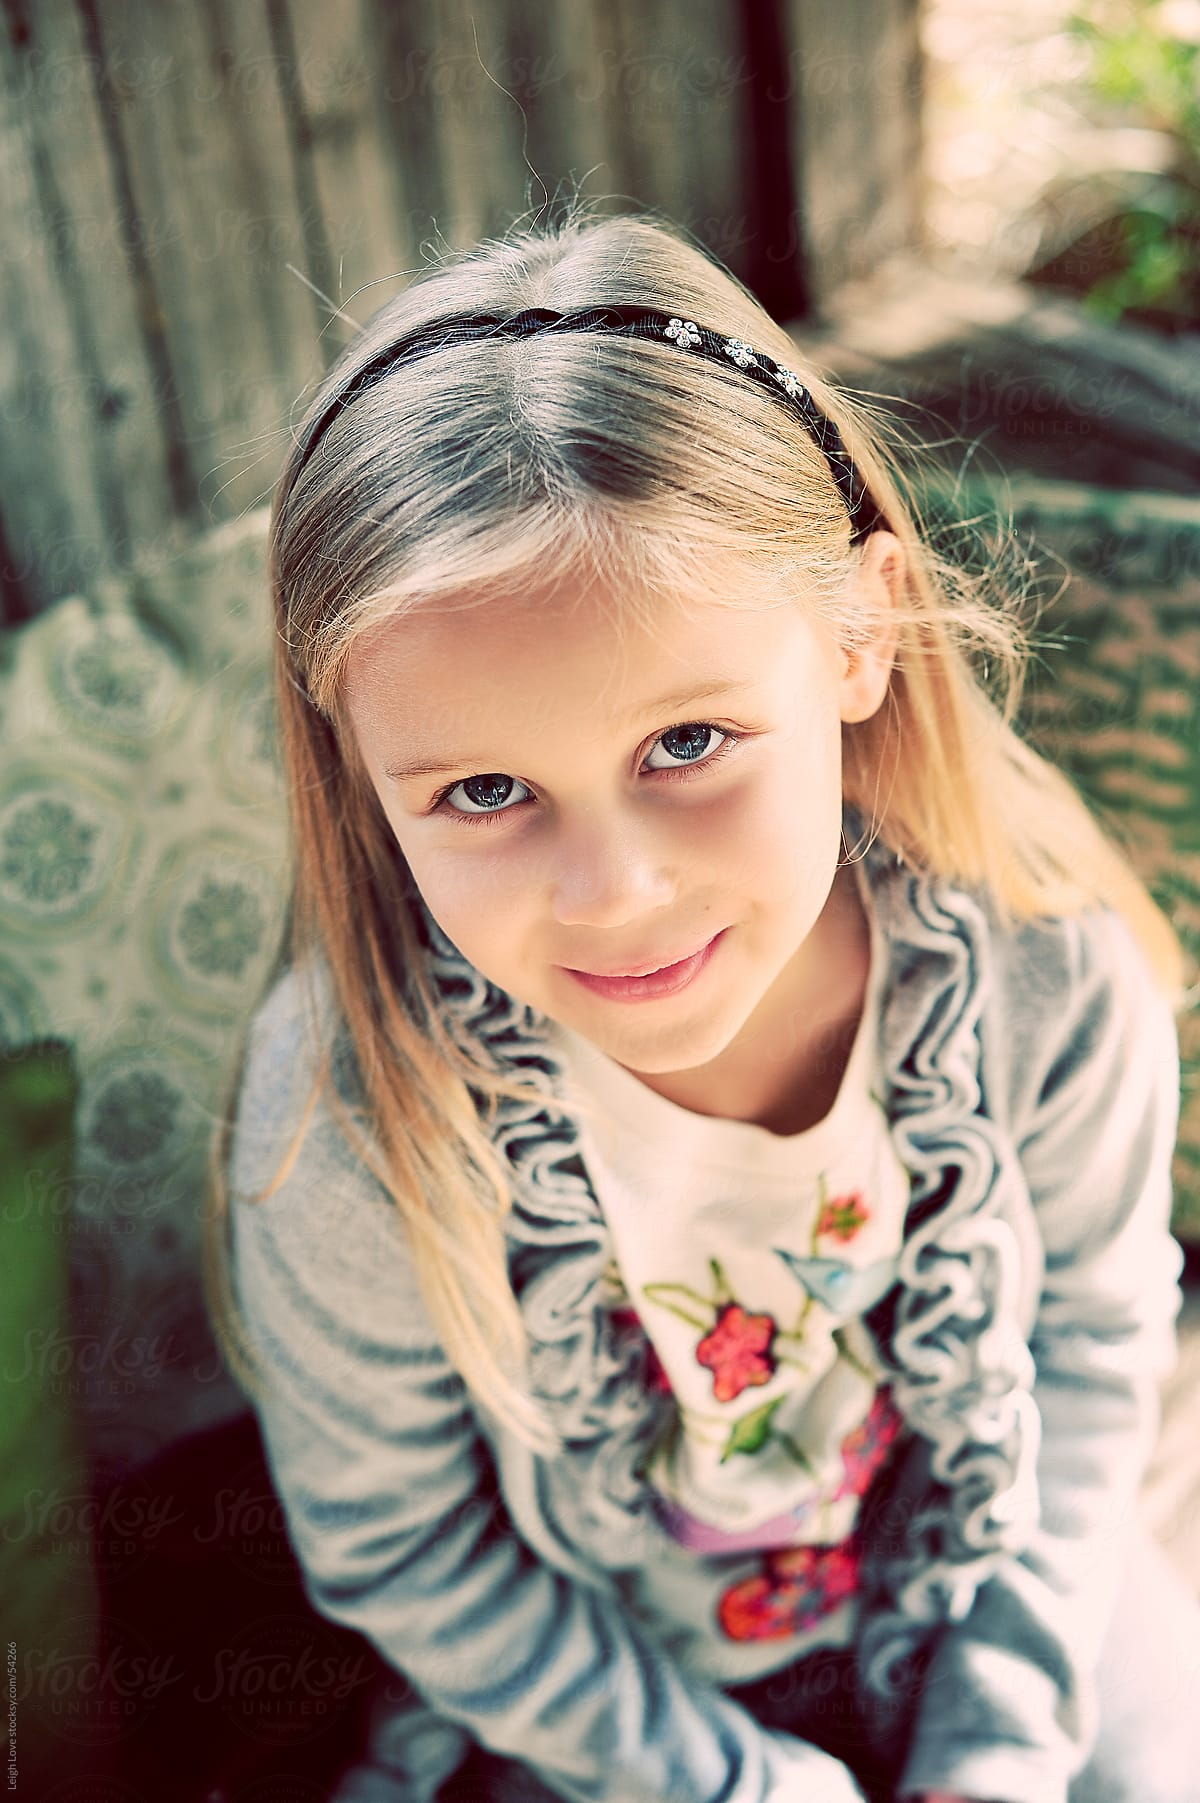 young blonde hair blue eyed girl looking up at the camera